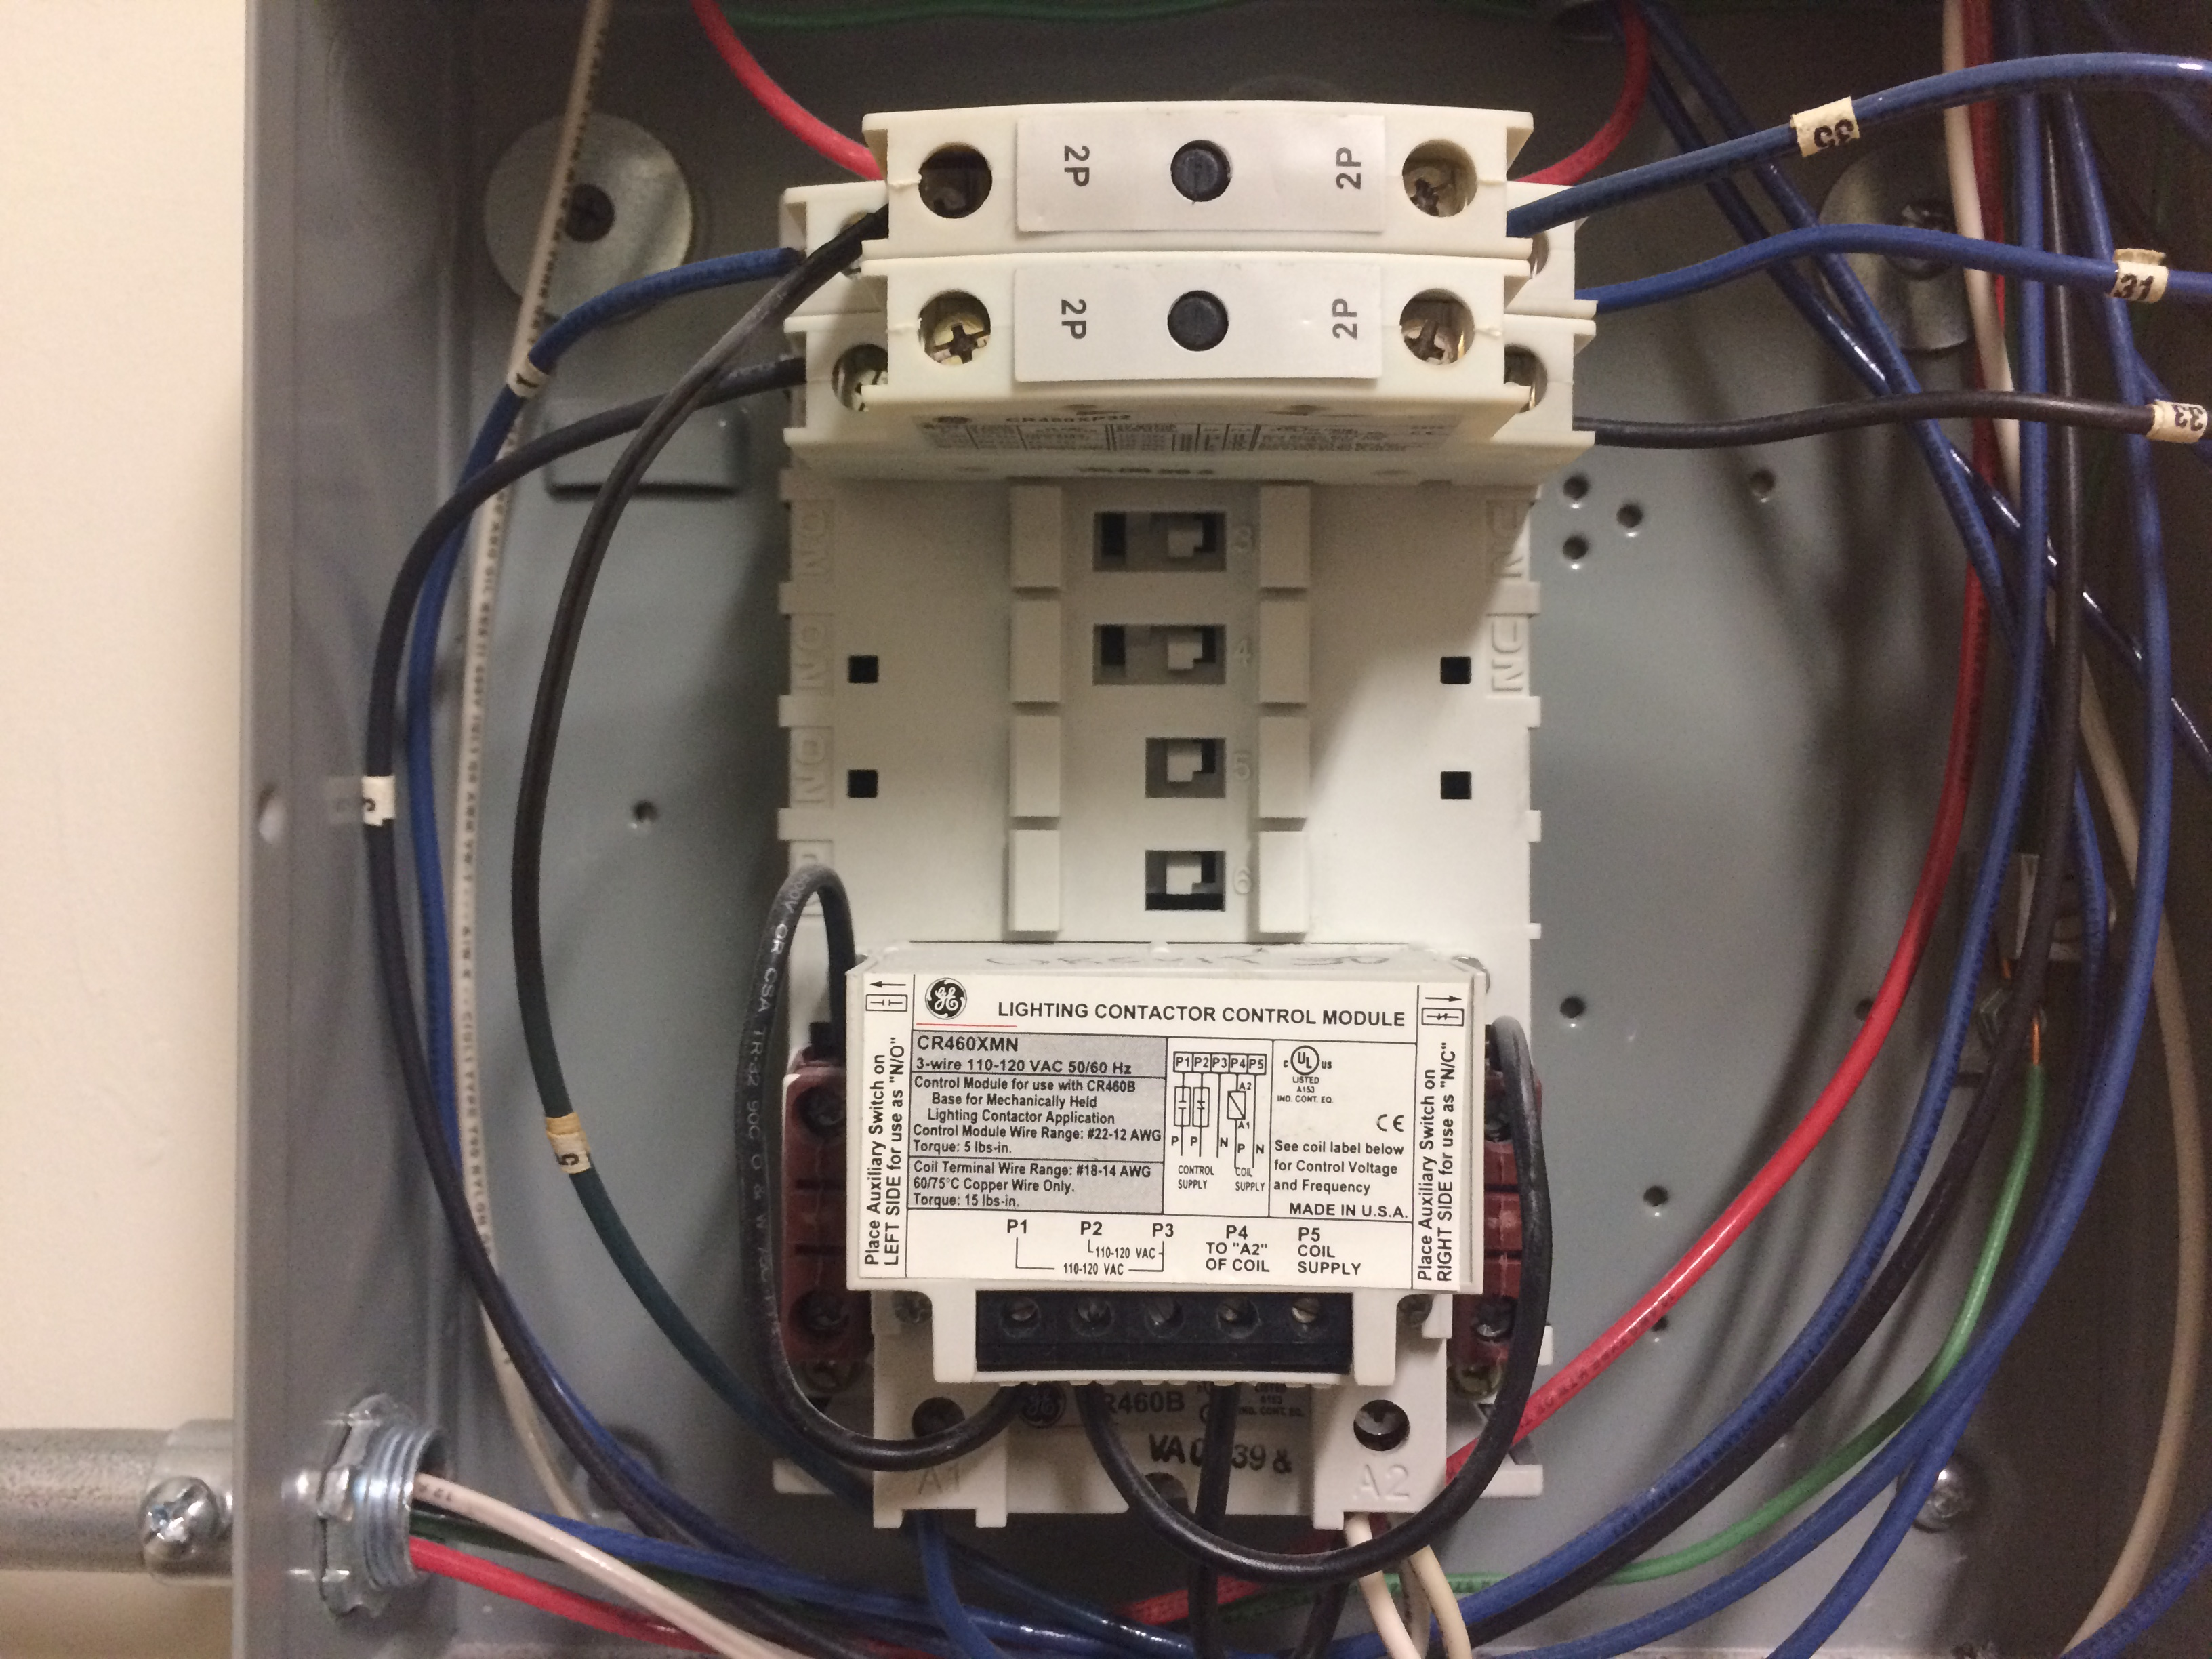 ge lighting contactor wiring diagrams manual e books Lighting Contactor Schematic ge lighting contactor wiring diagrams